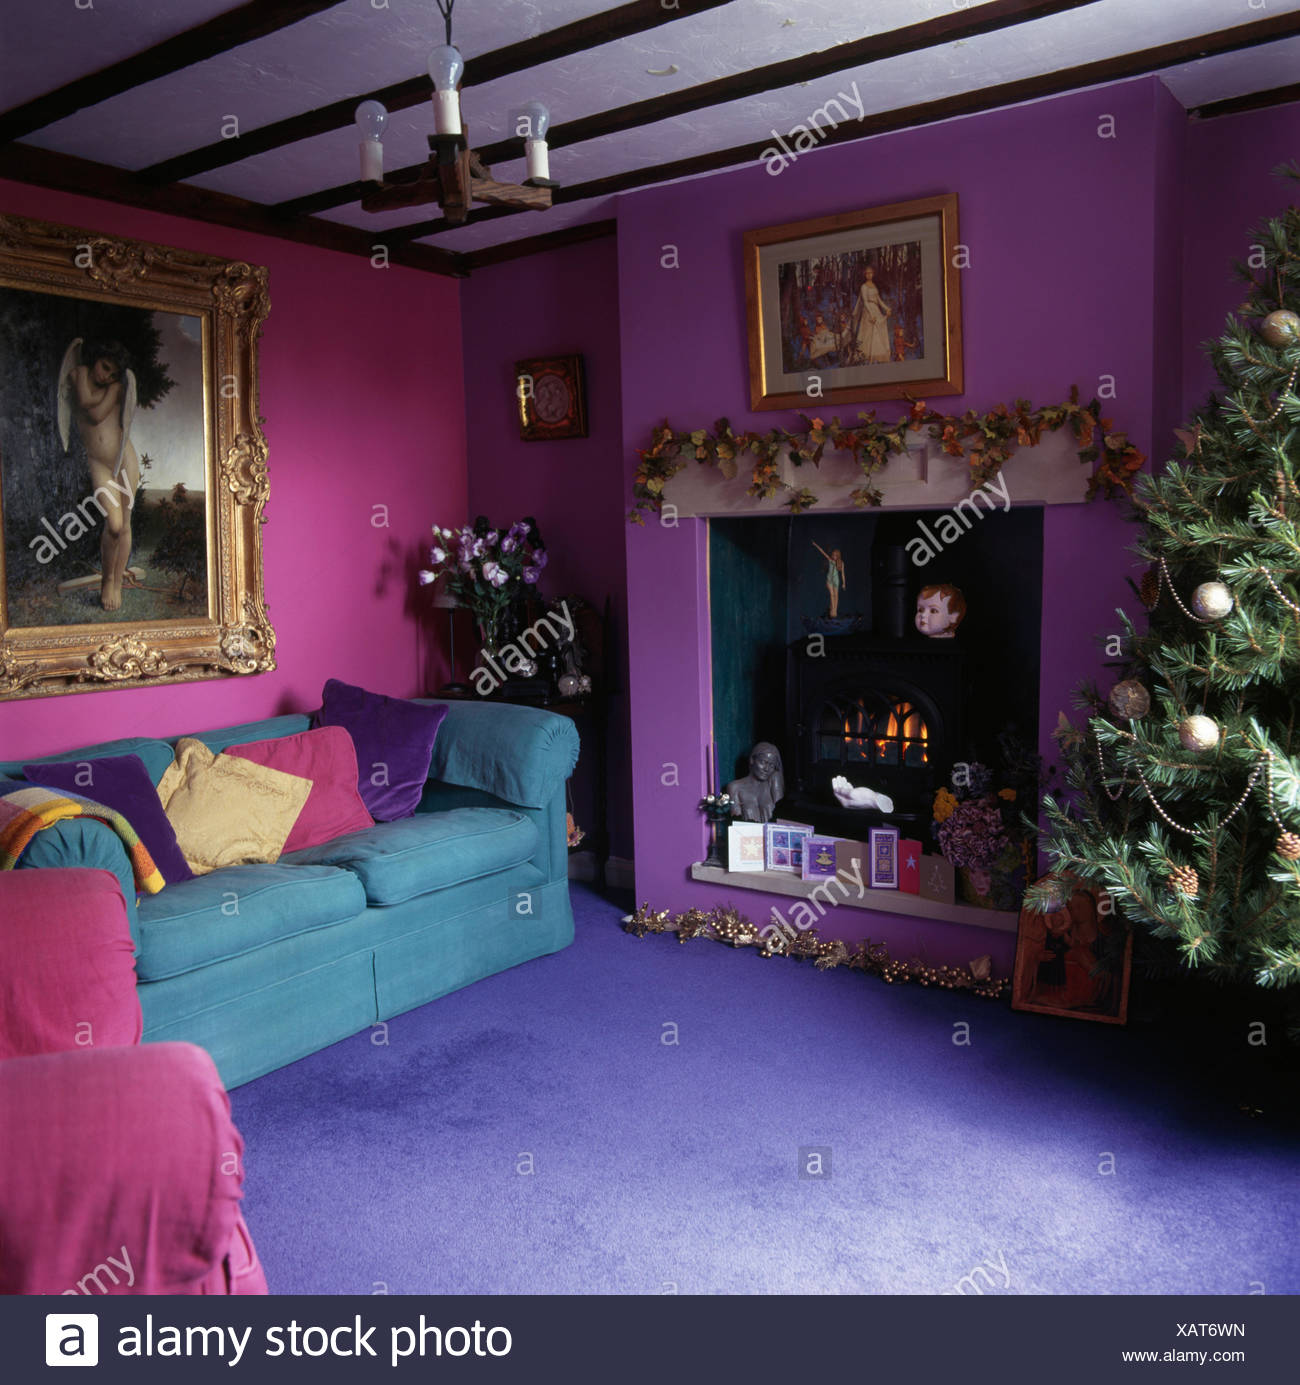 Bright blue carpet and turquoise sofa in purple and pink ...